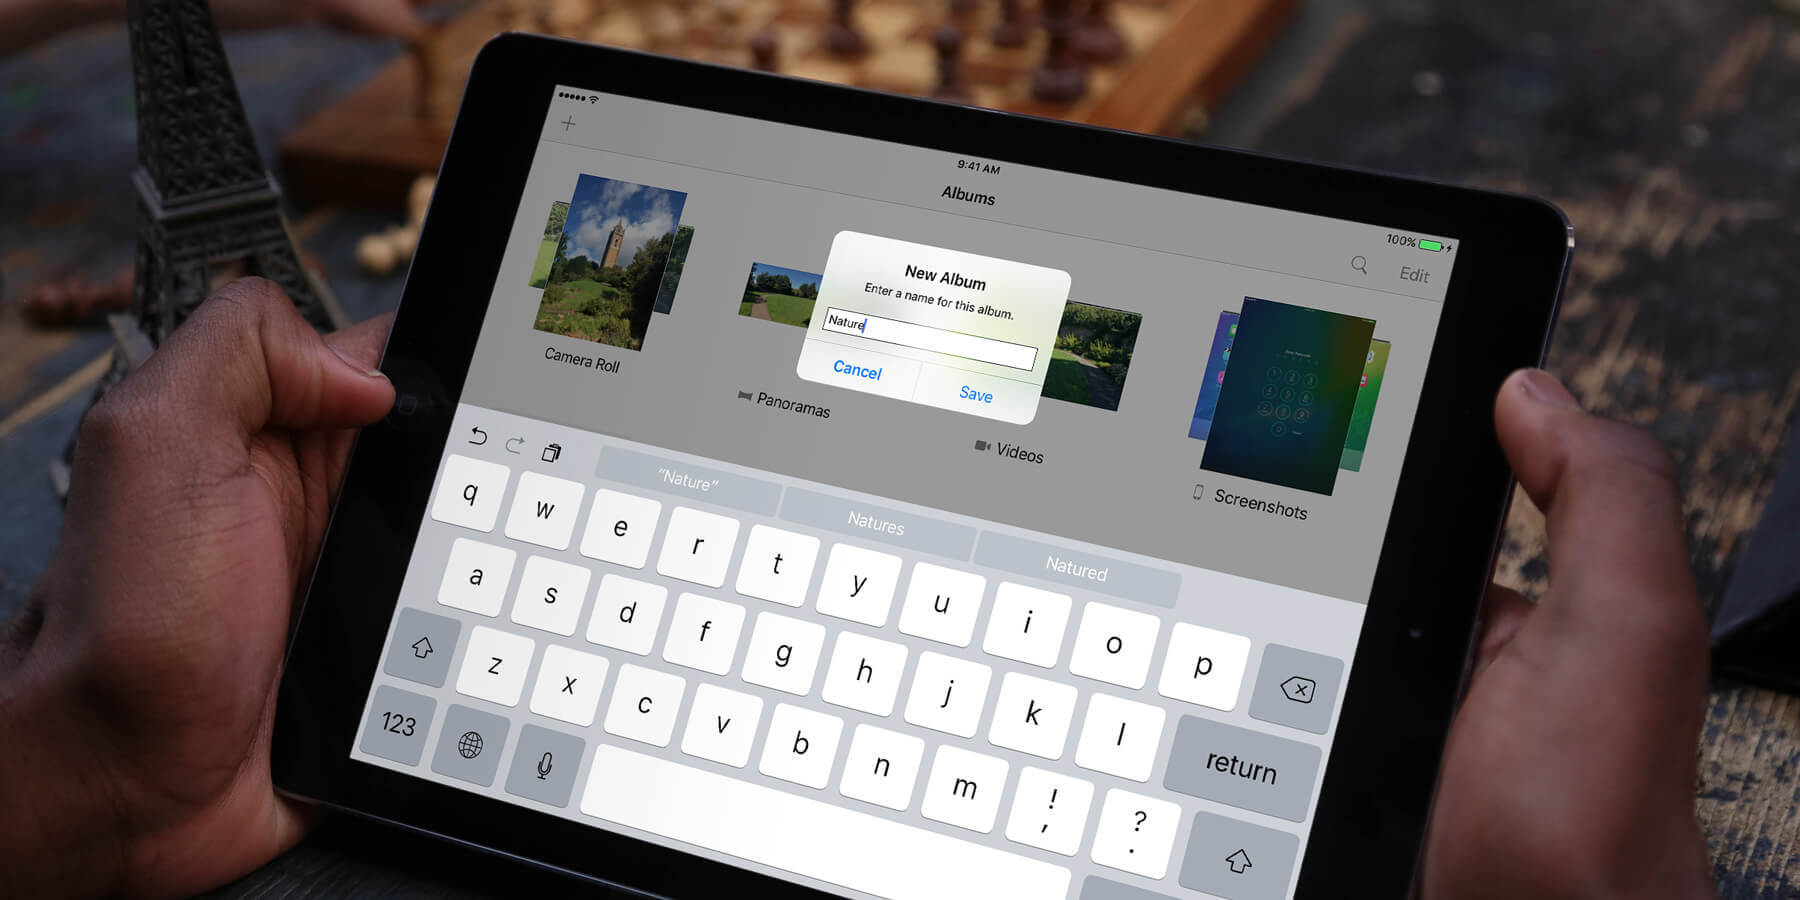 how to delete photo albums on iphone synced from computer